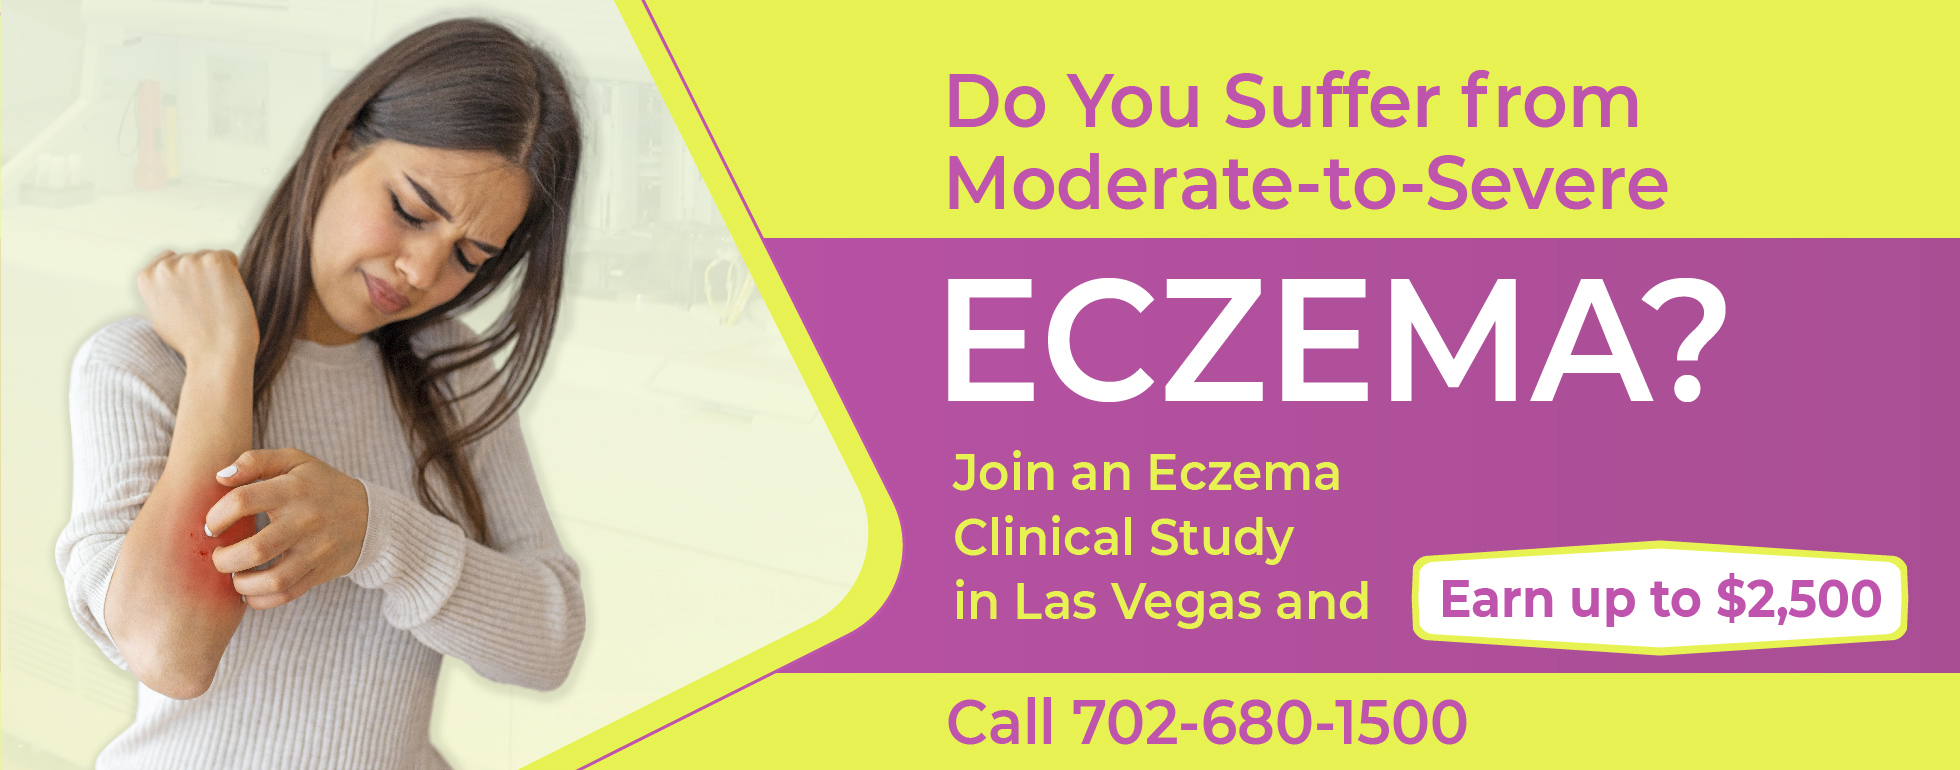 Eczema Study Excel Clinical Research Las Vegas